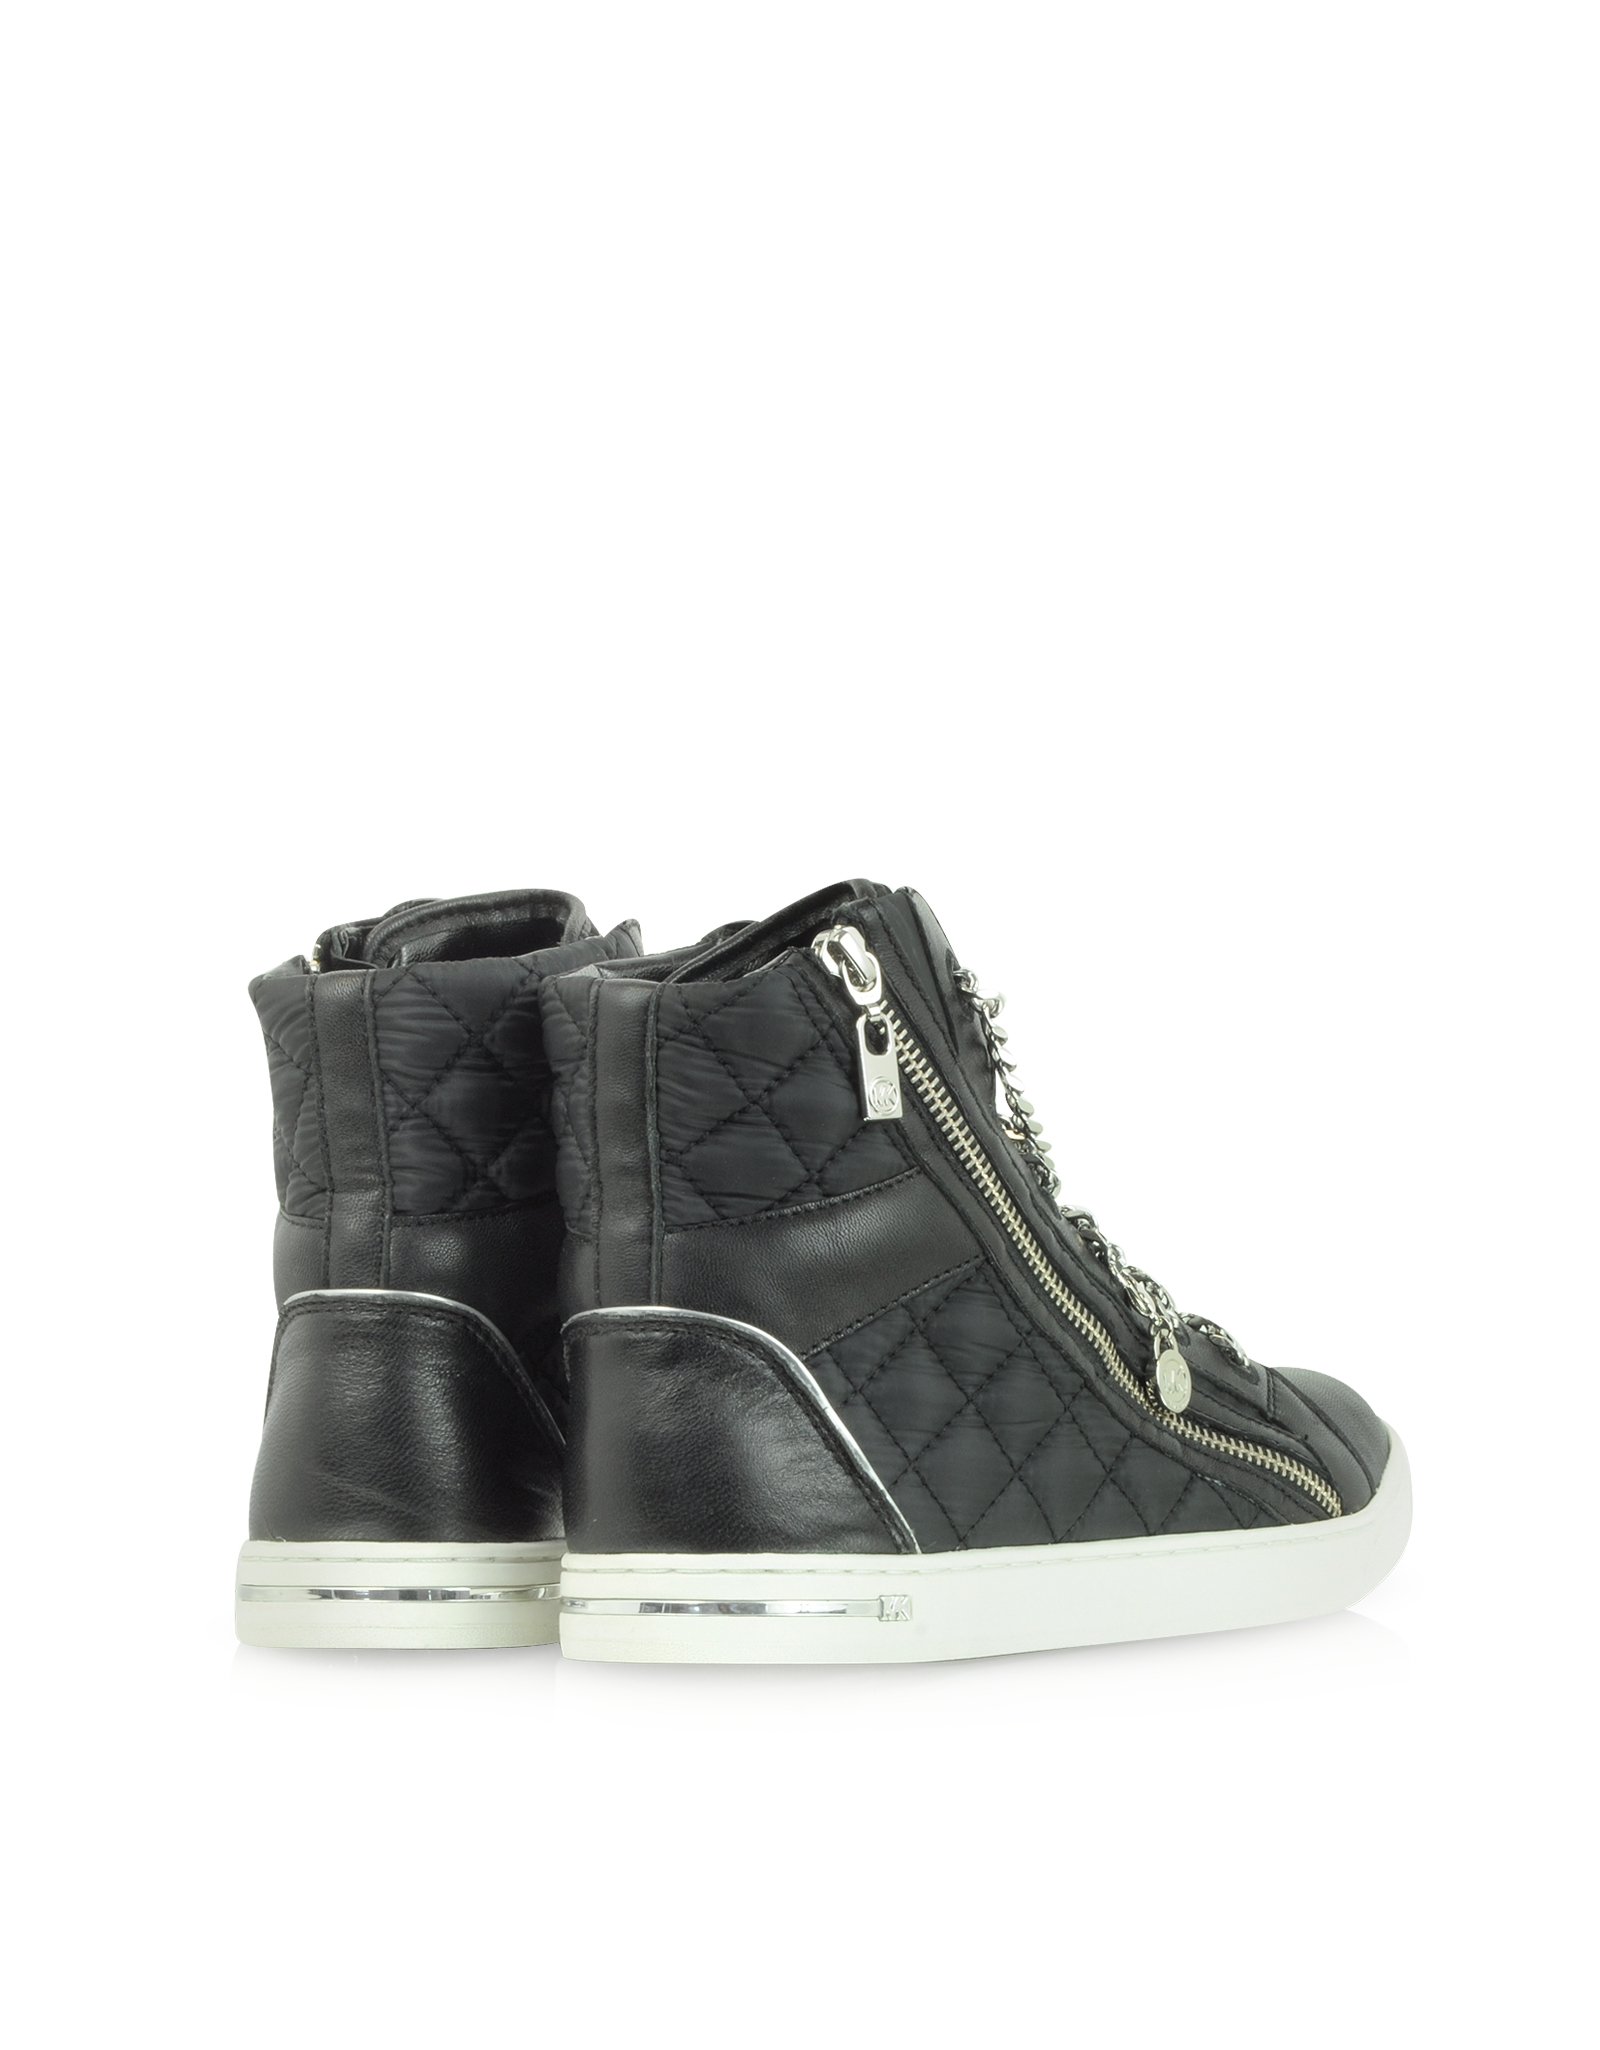 michael kors sneaker urban high top cocoa pictures to pin on pinterest. Black Bedroom Furniture Sets. Home Design Ideas